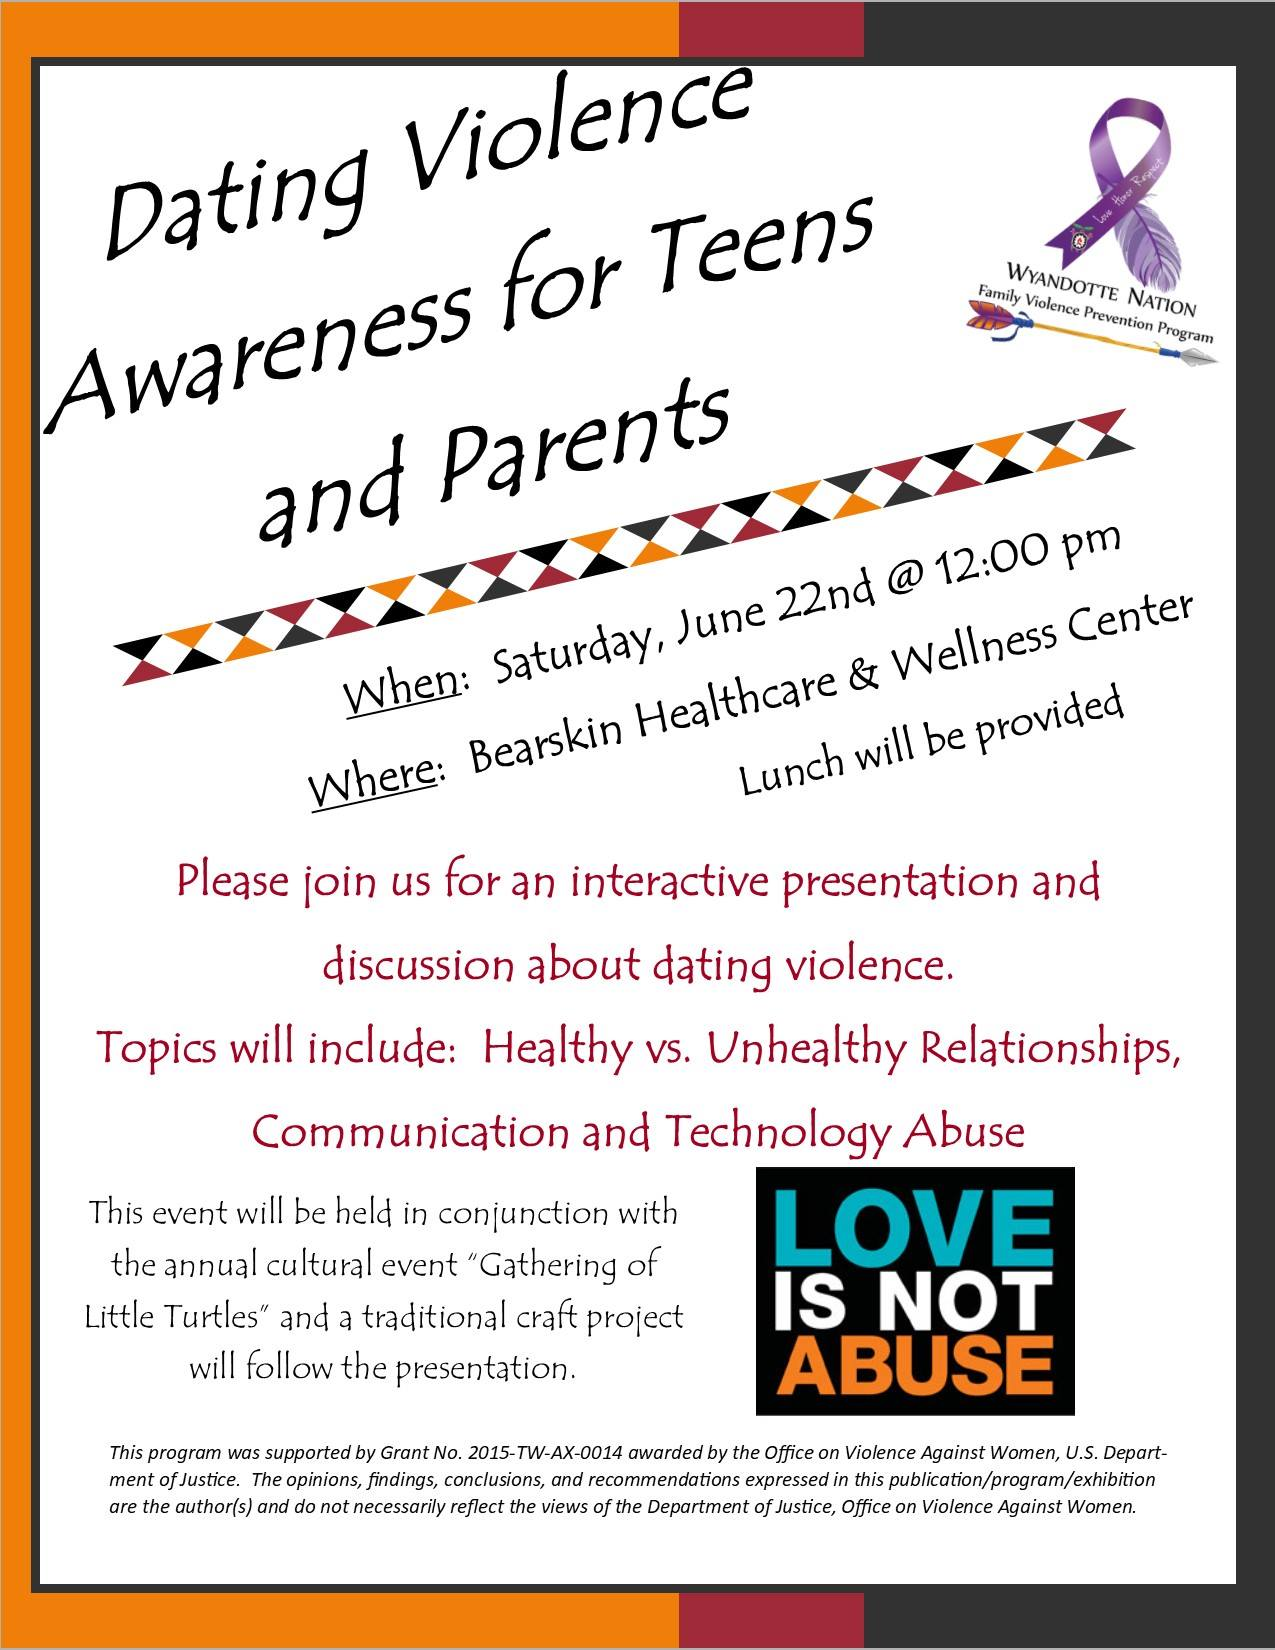 Dating violence awareness for teens and parents Oklahoma Wyandotte